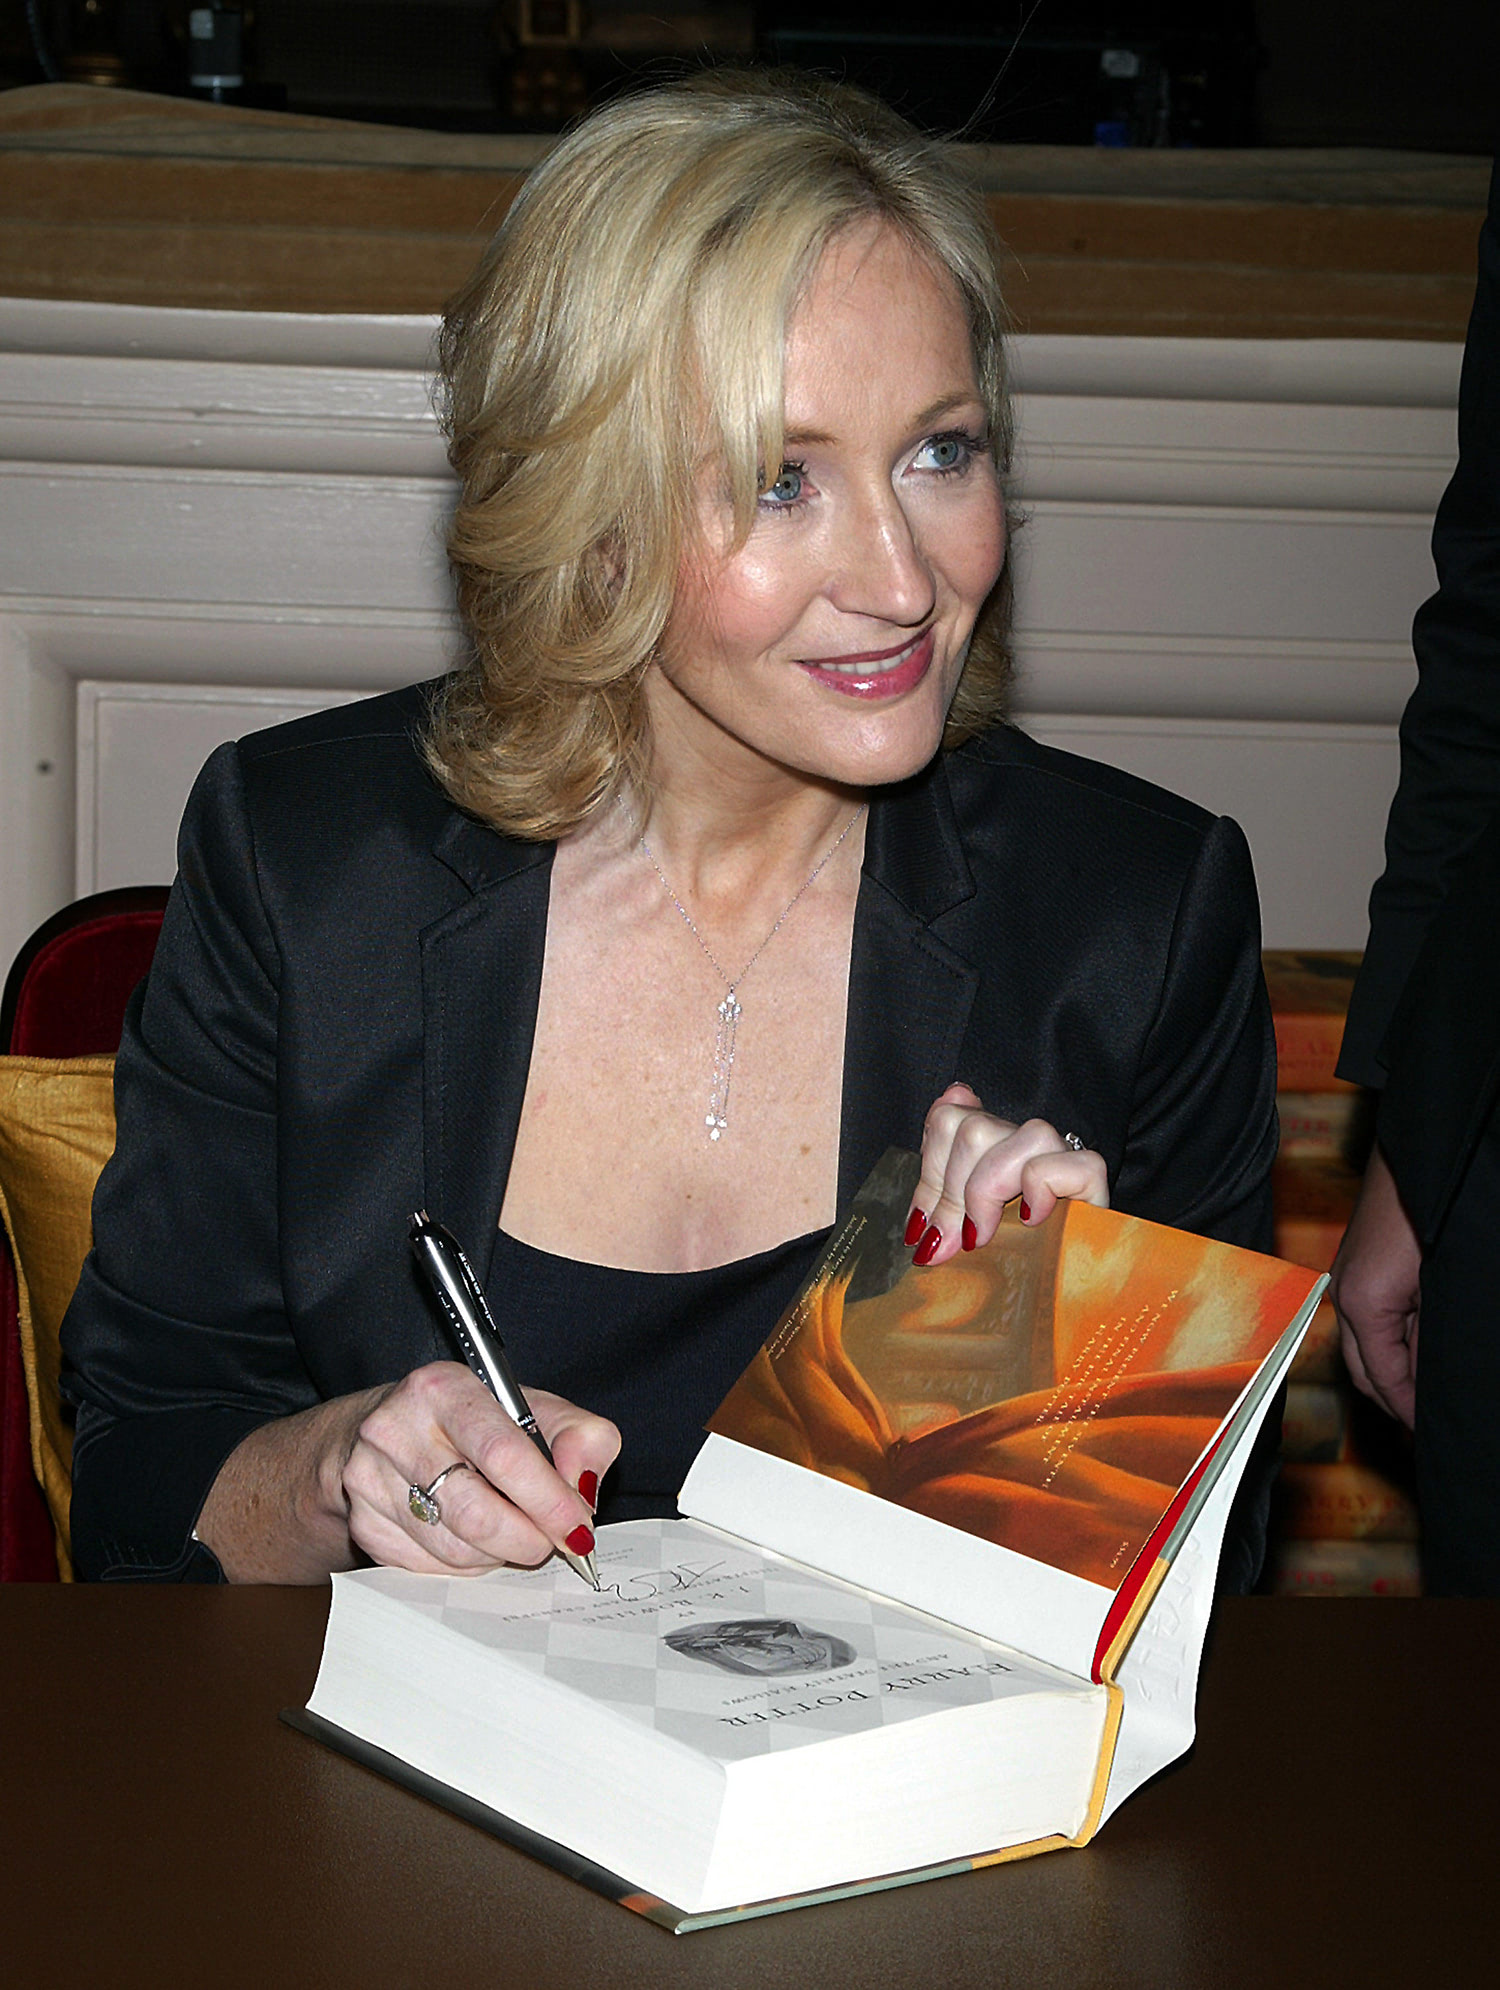 J.K. Rowling signs books at Carnegie Hall